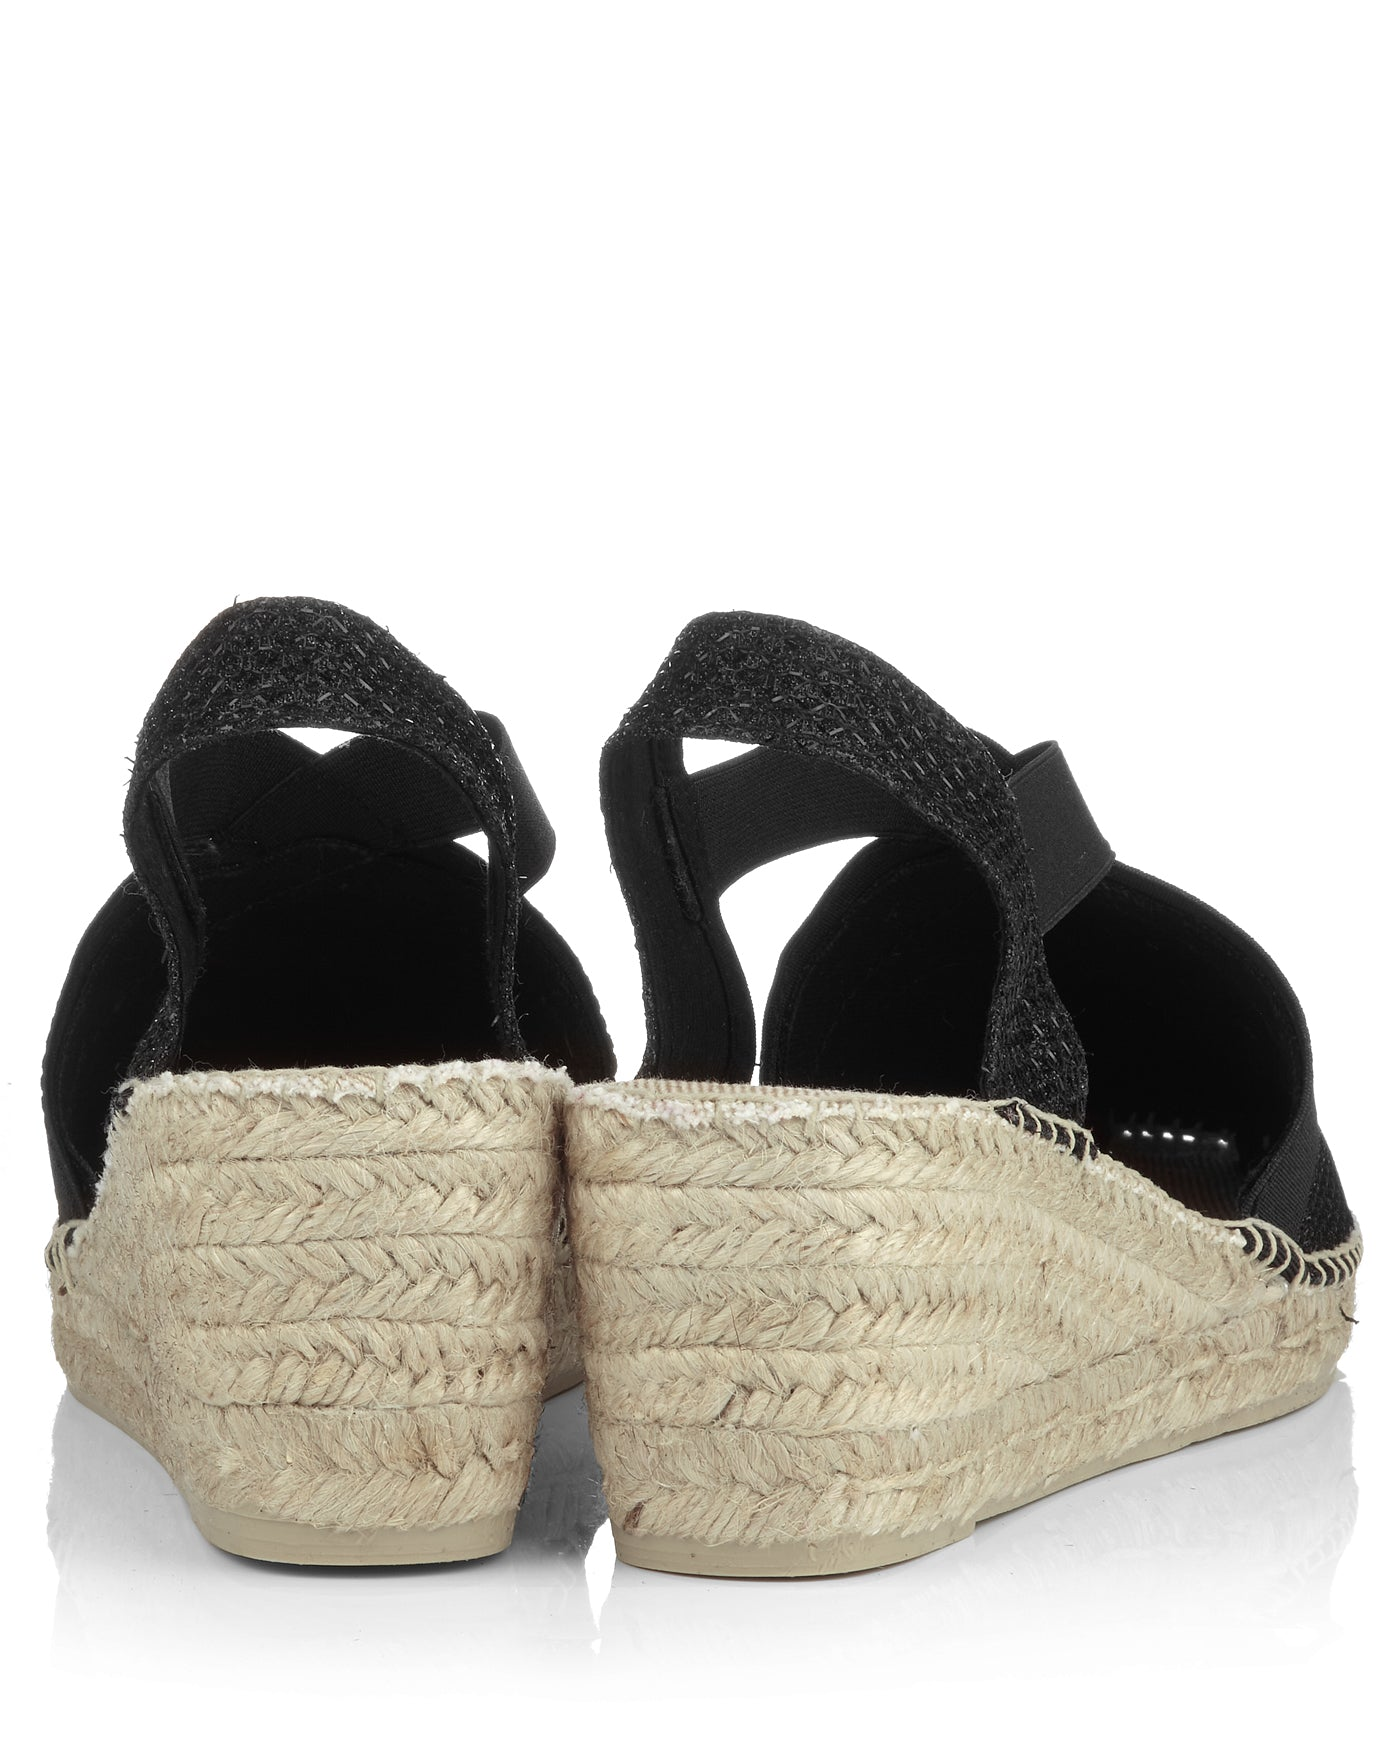 Triton Black Shimmer Fabric Wedges - The Espadrille Hut